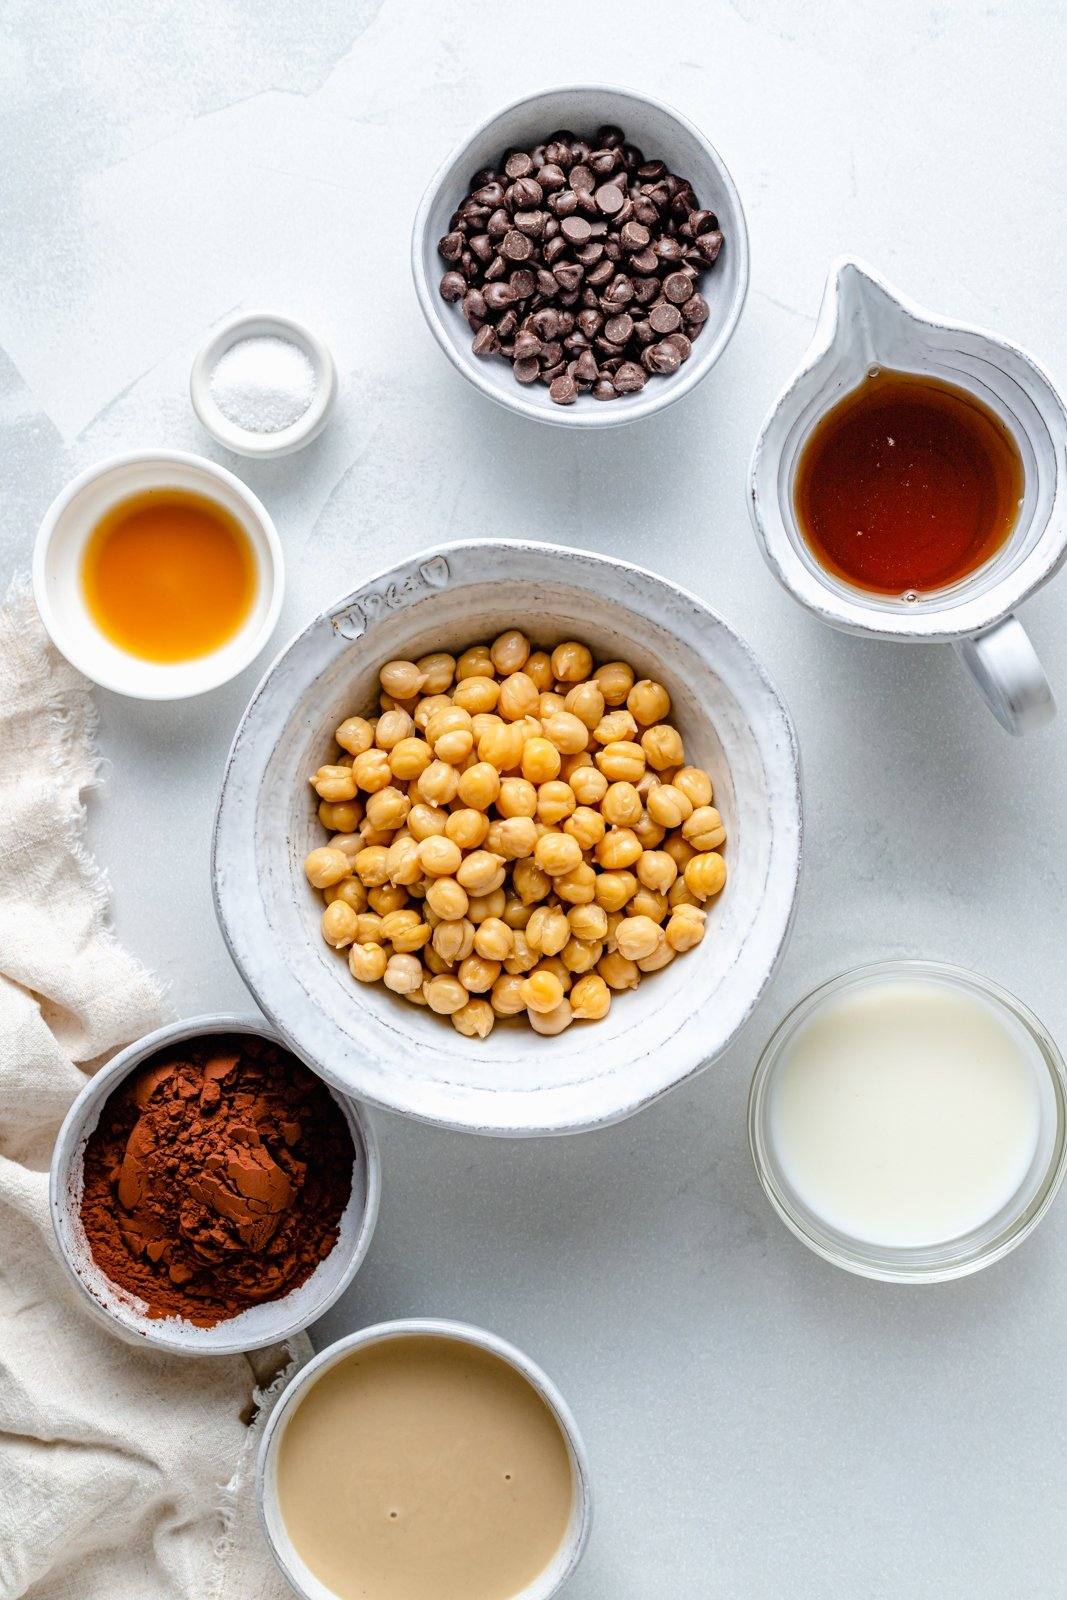 ingredients for healthy chocolate hummus in bowls